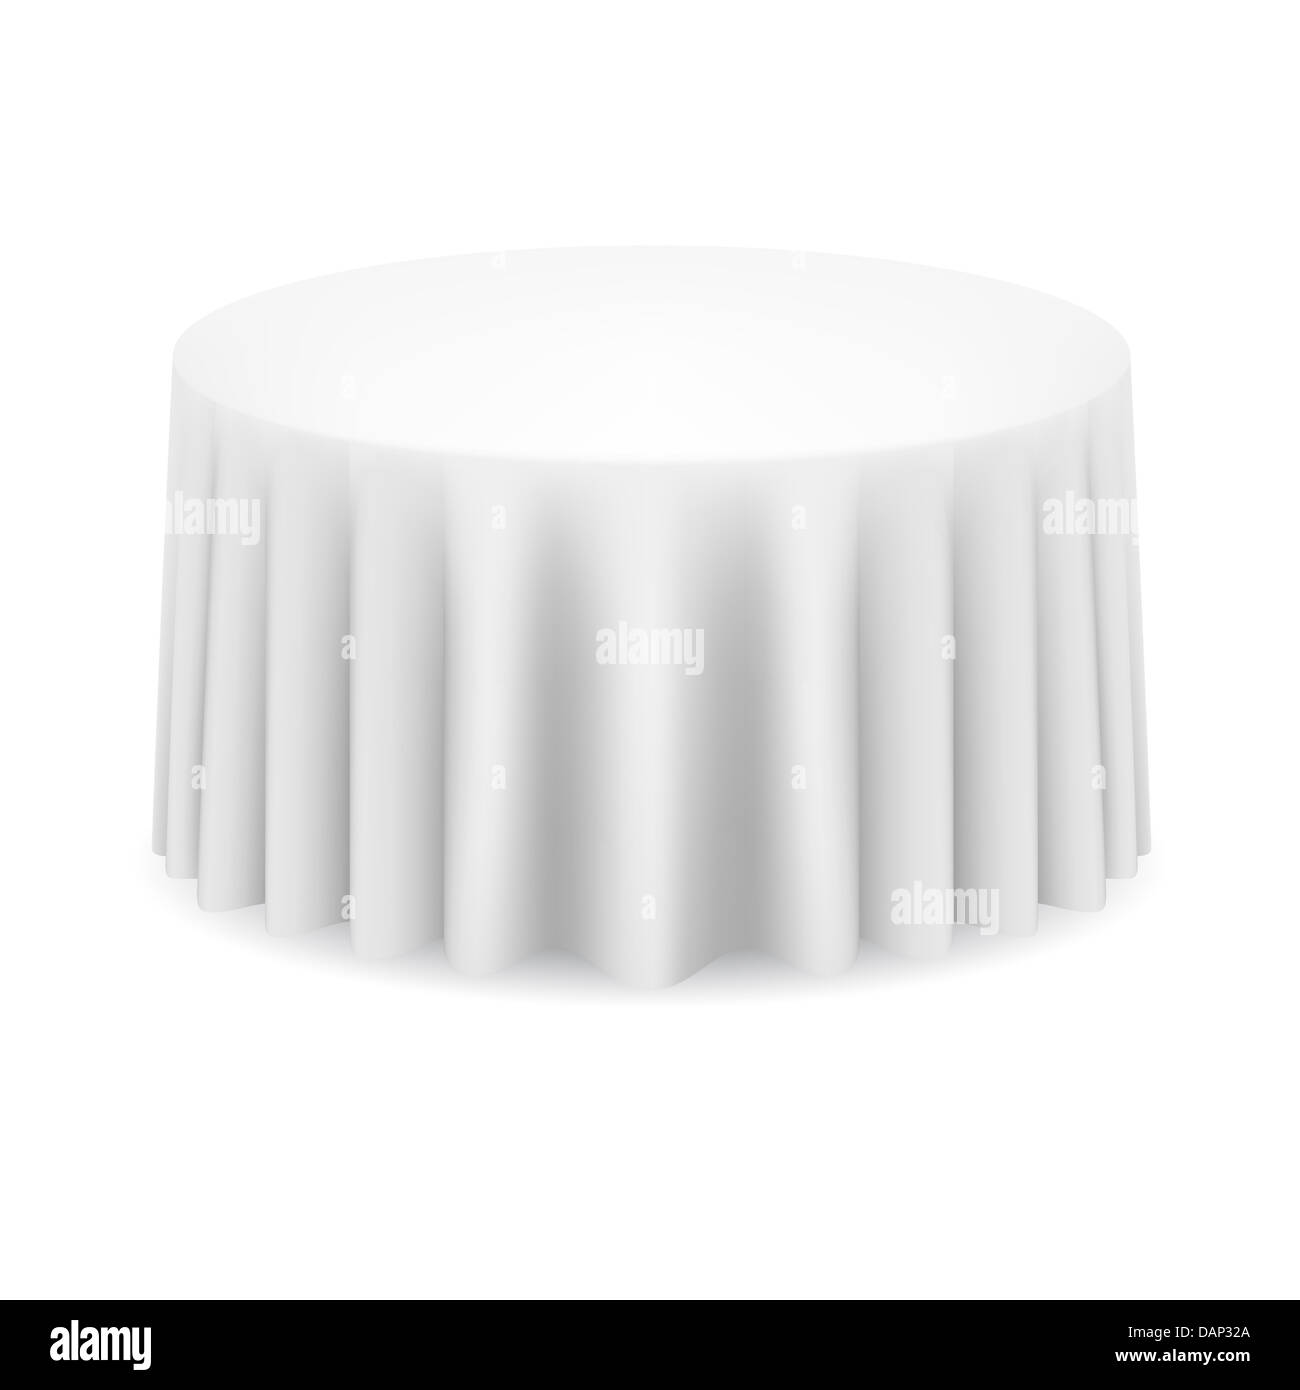 Round Table With Tablecloth.White Round Table With Tablecloth Illustration On White Stock Photo